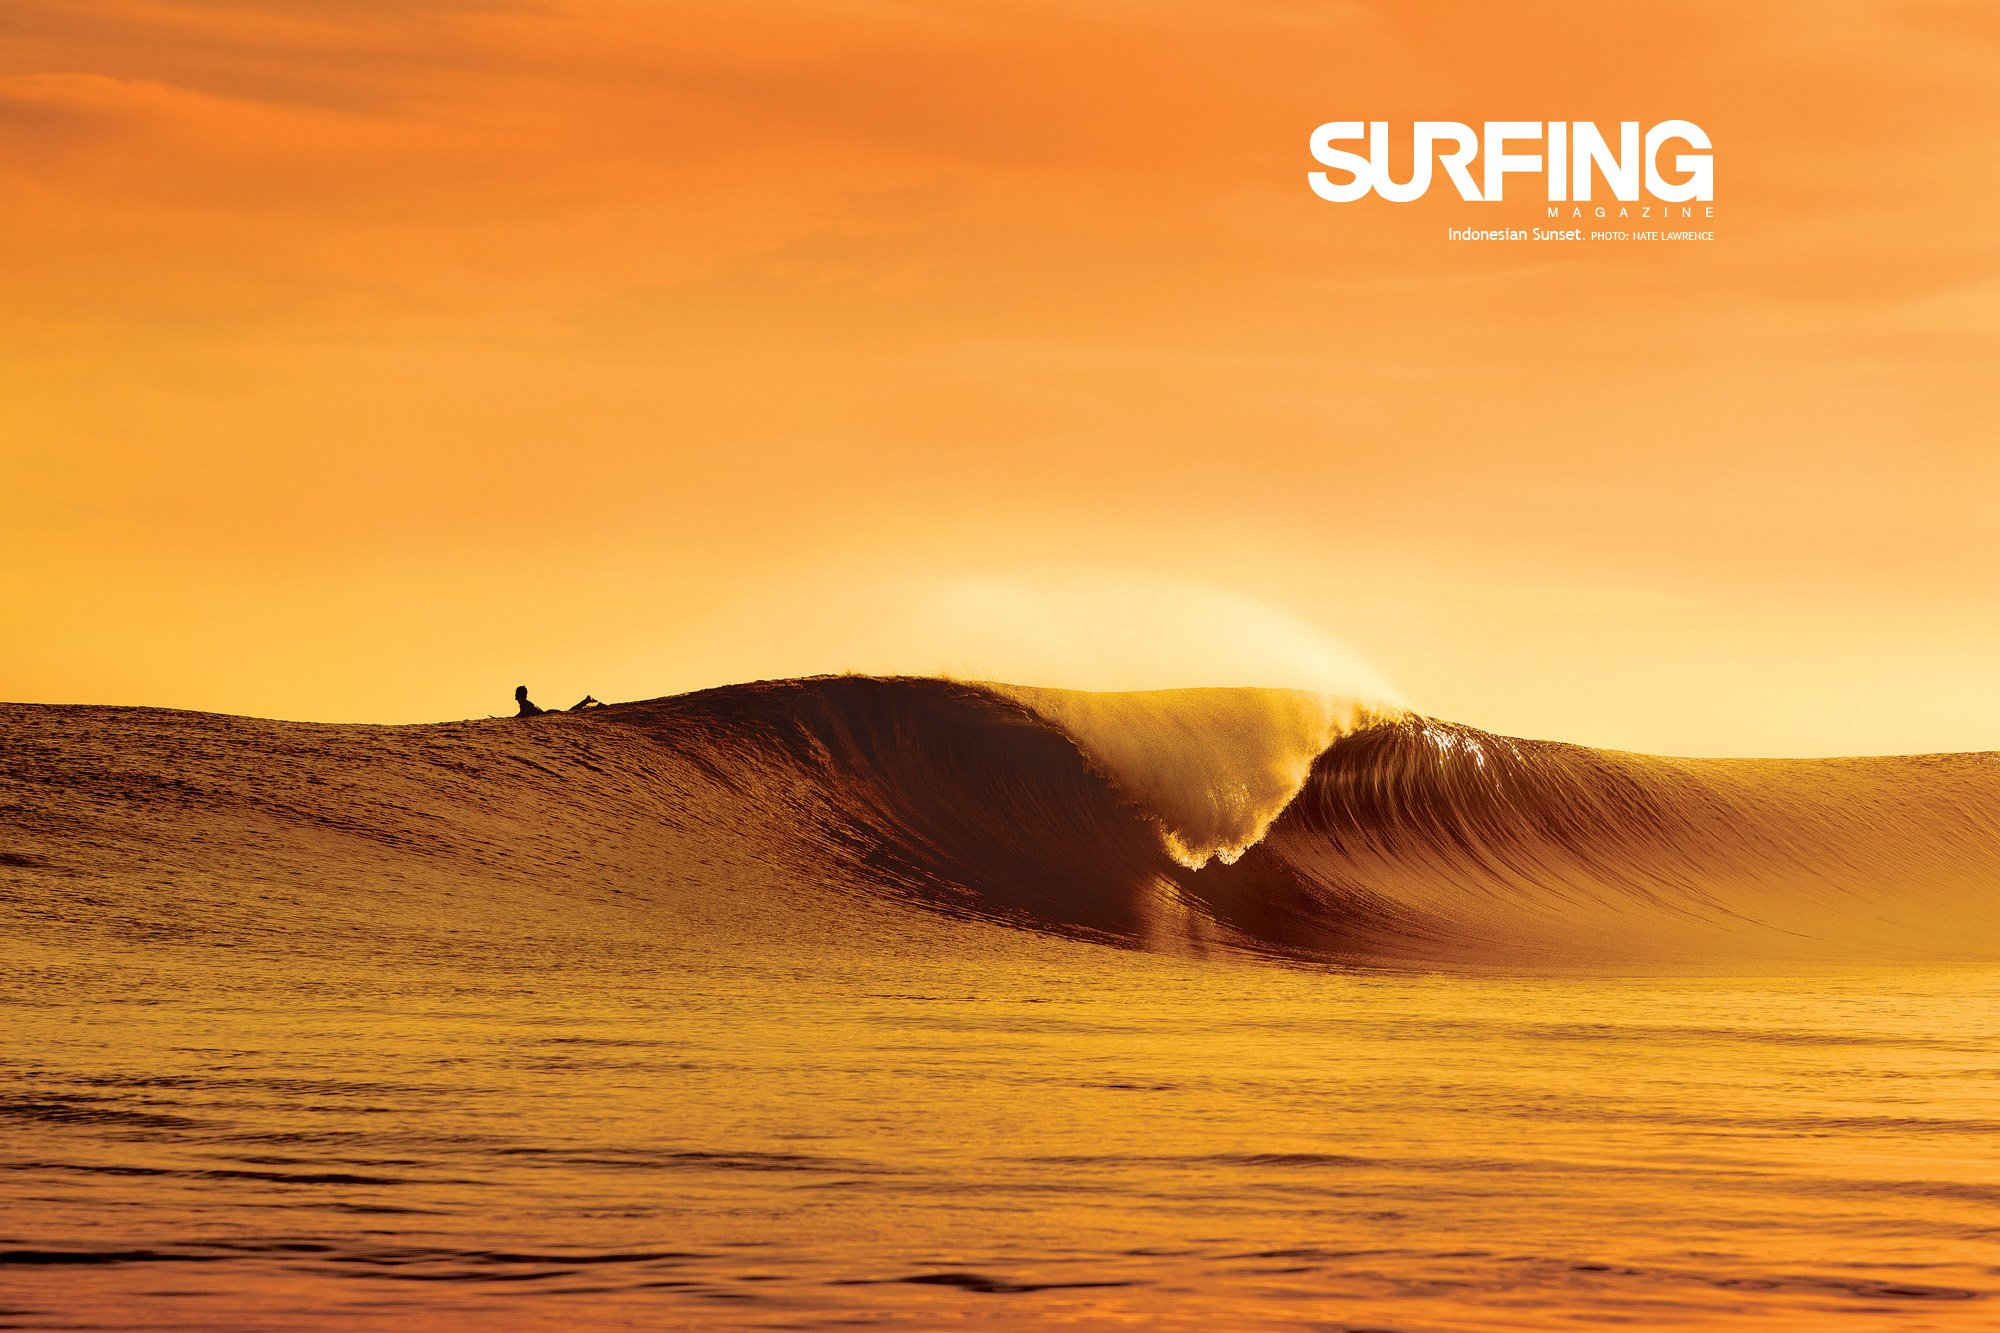 February 2012 Issue Wallpaper SURFING Magazine 2000x1333